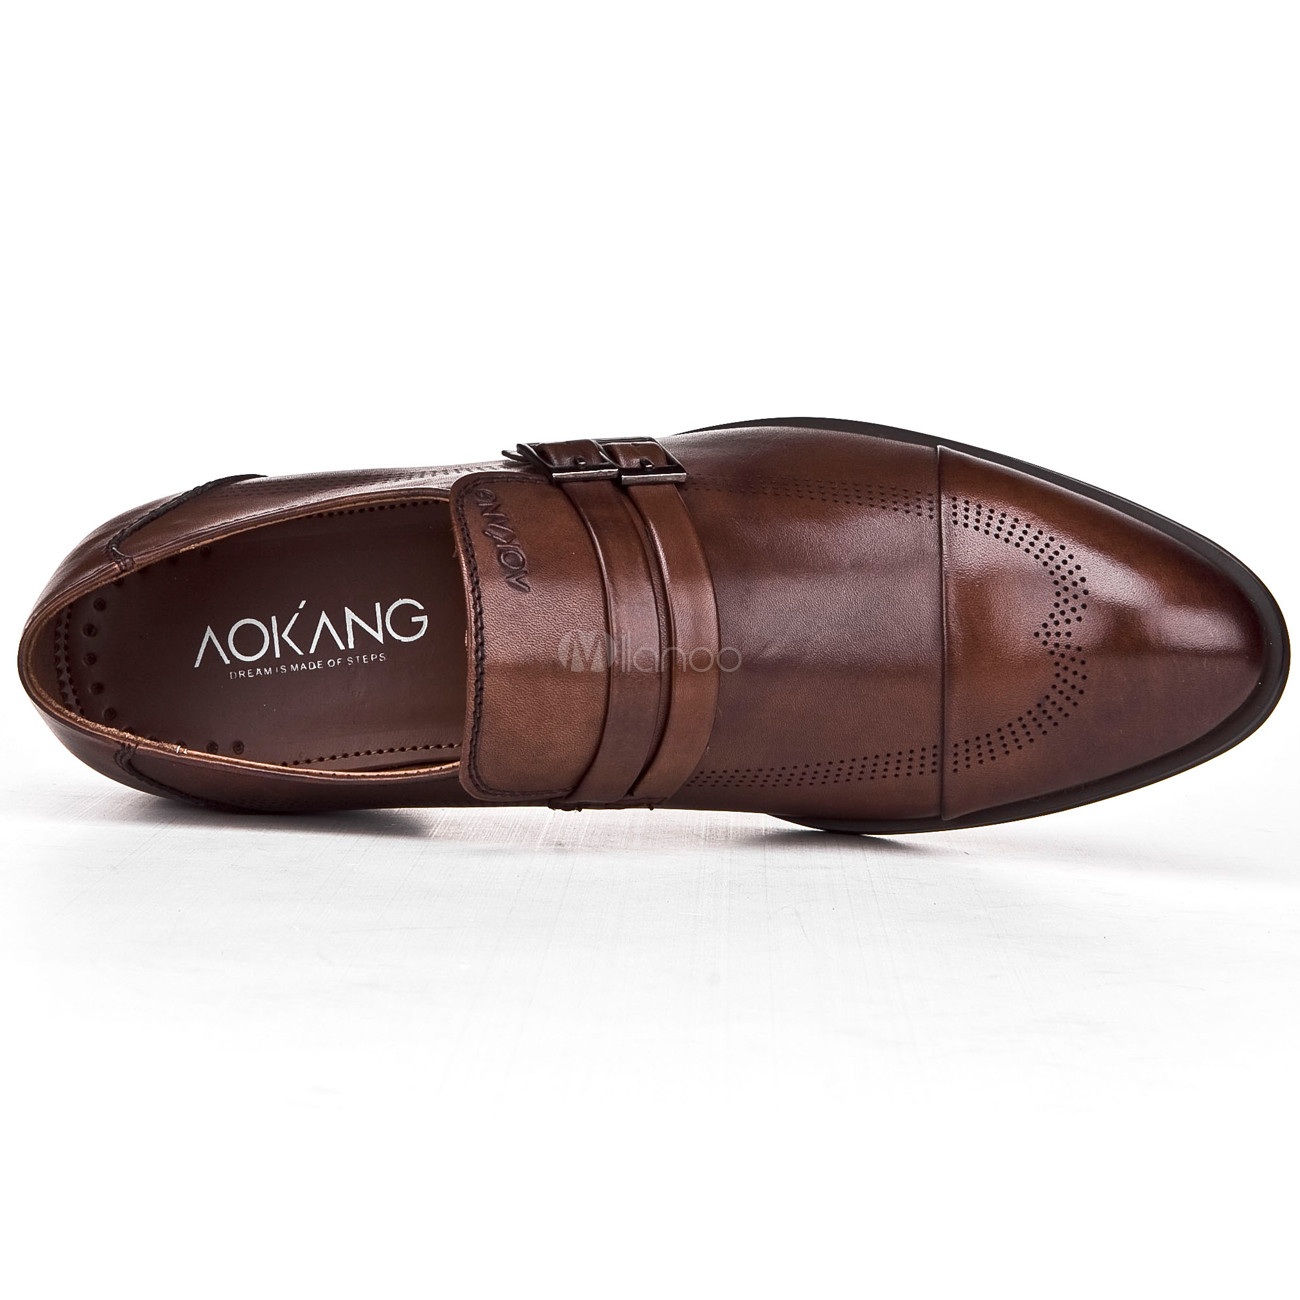 Mens Alligator Shoes Images For Men Get Into Stylish